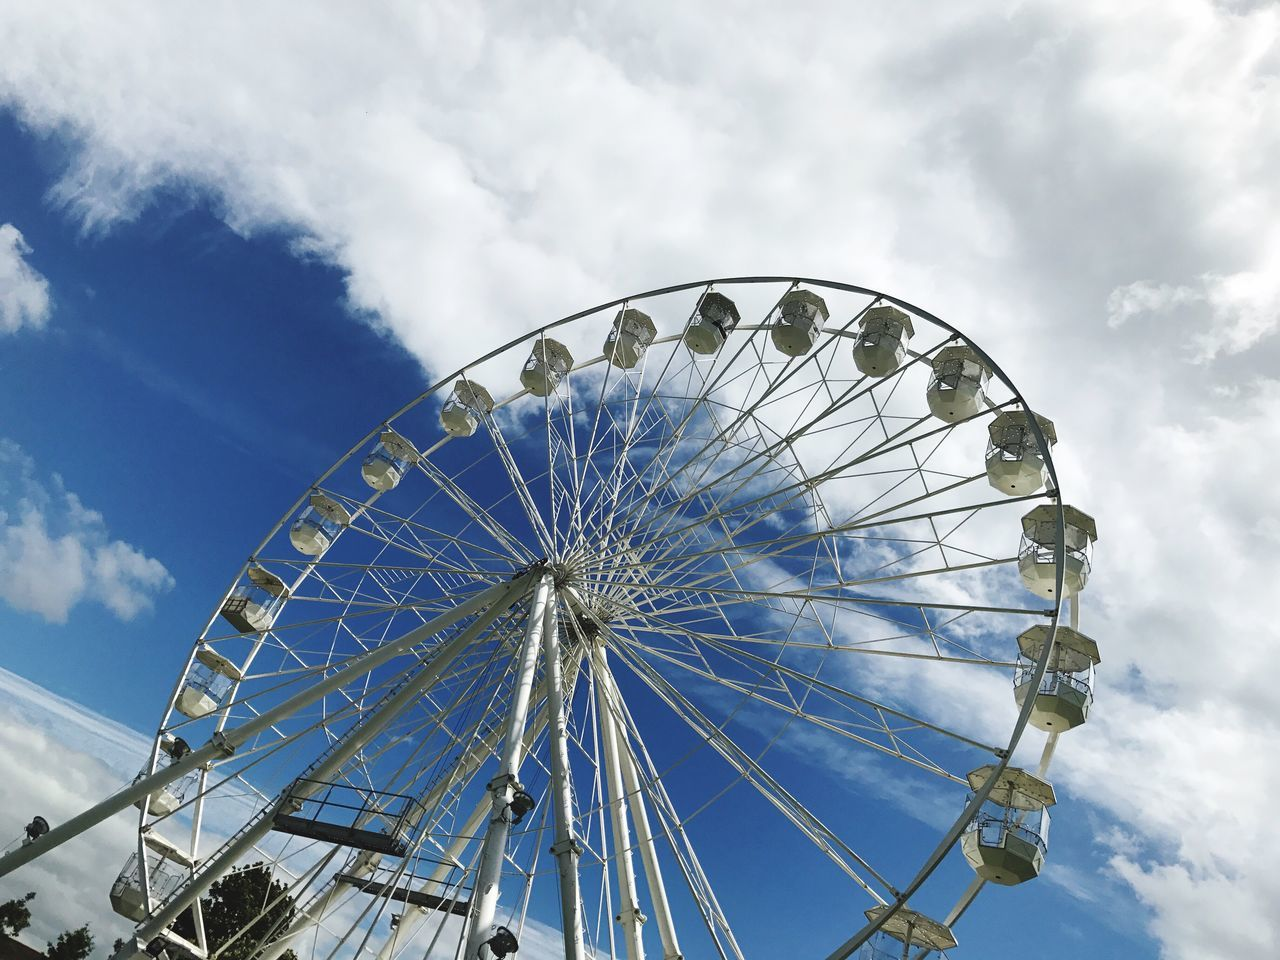 amusement park, arts culture and entertainment, ferris wheel, low angle view, fairground ride, sky, big wheel, amusement park ride, cloud - sky, blue, day, no people, leisure activity, outdoors